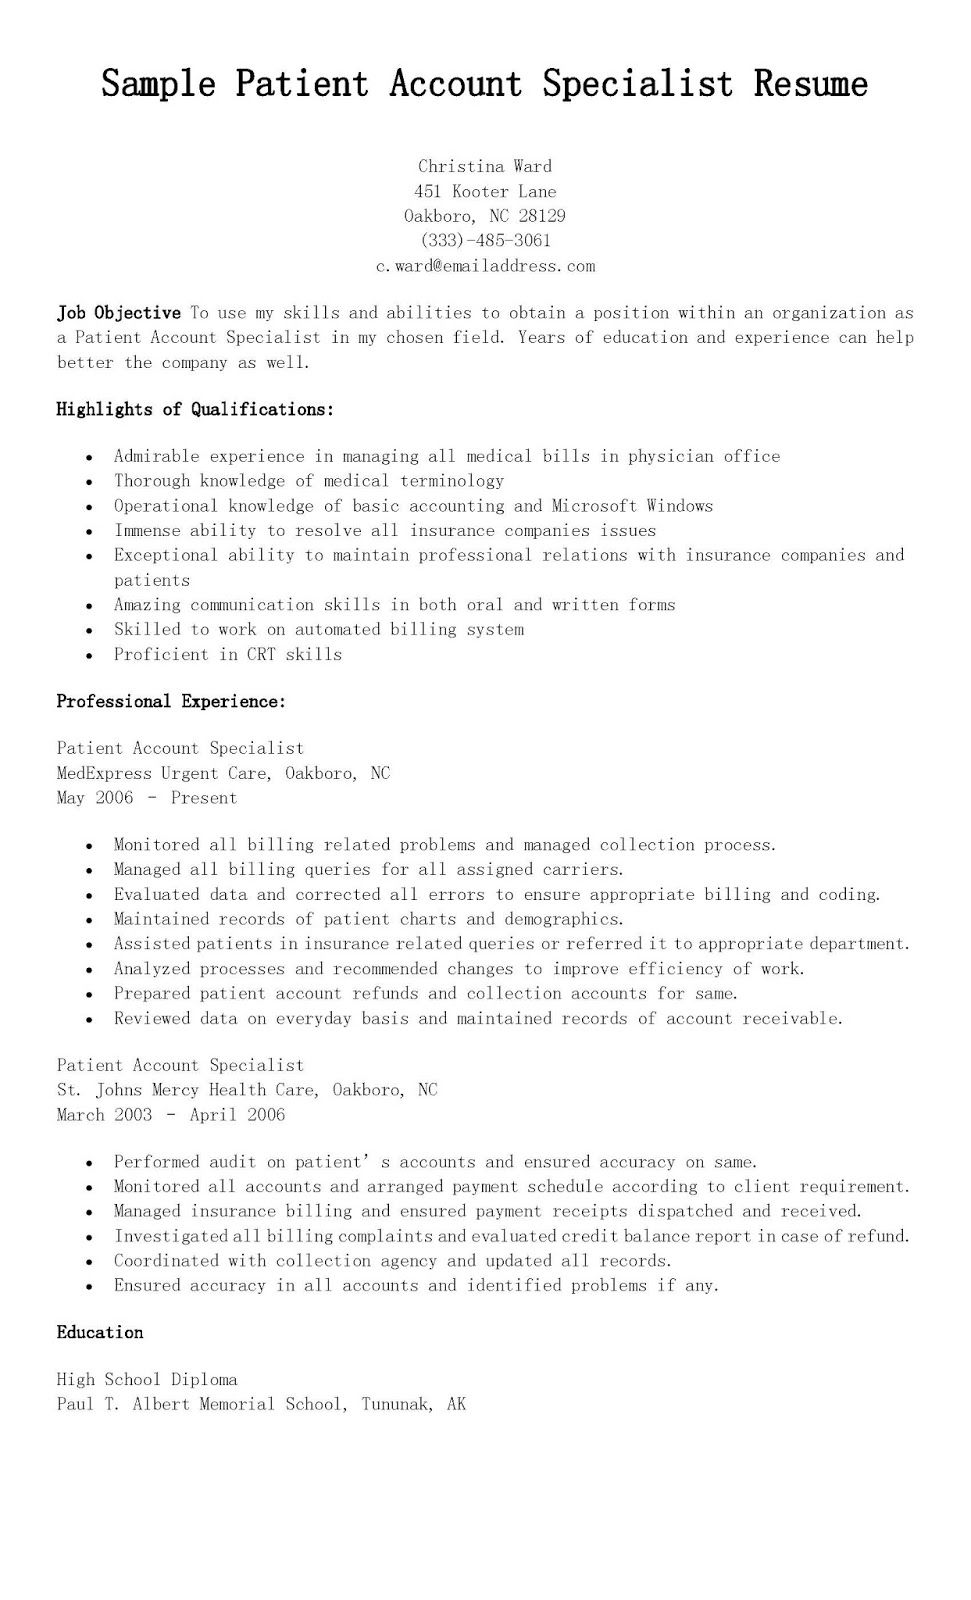 Sample Patient Account Specialist Resume Resame Pinterest